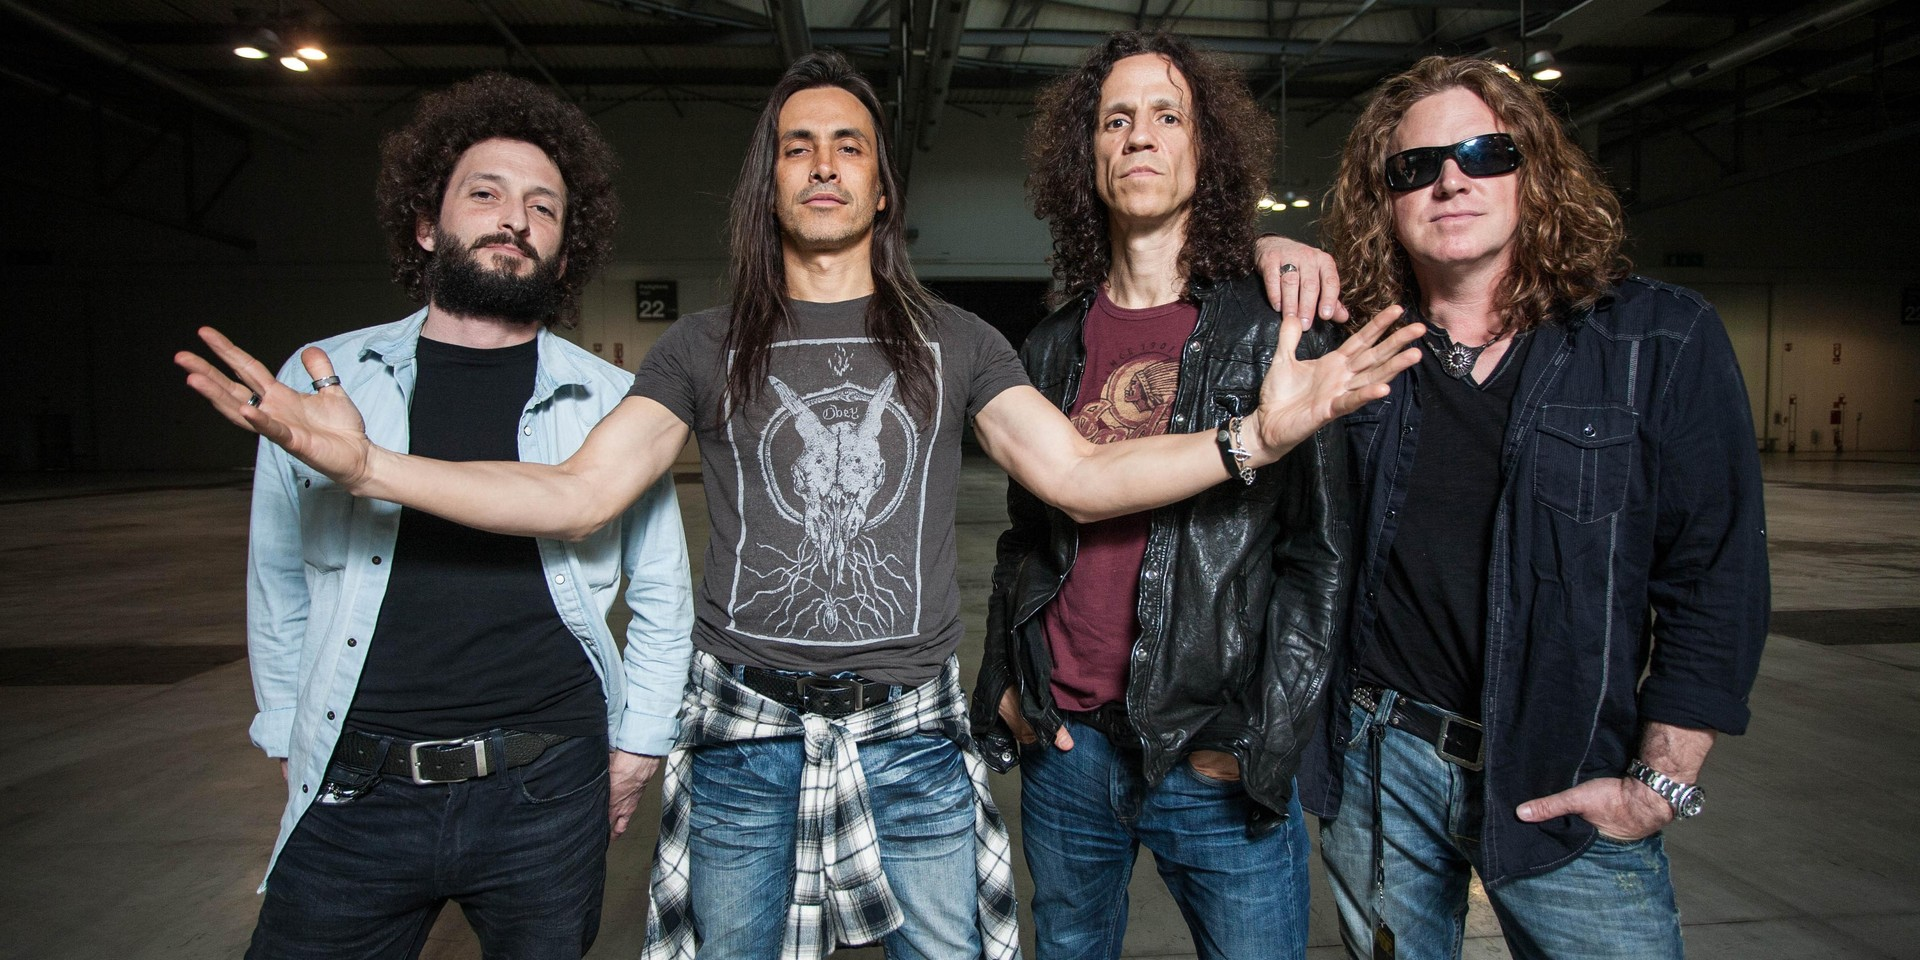 Guitarist Nuno Bettencourt looks back on Extreme's discography